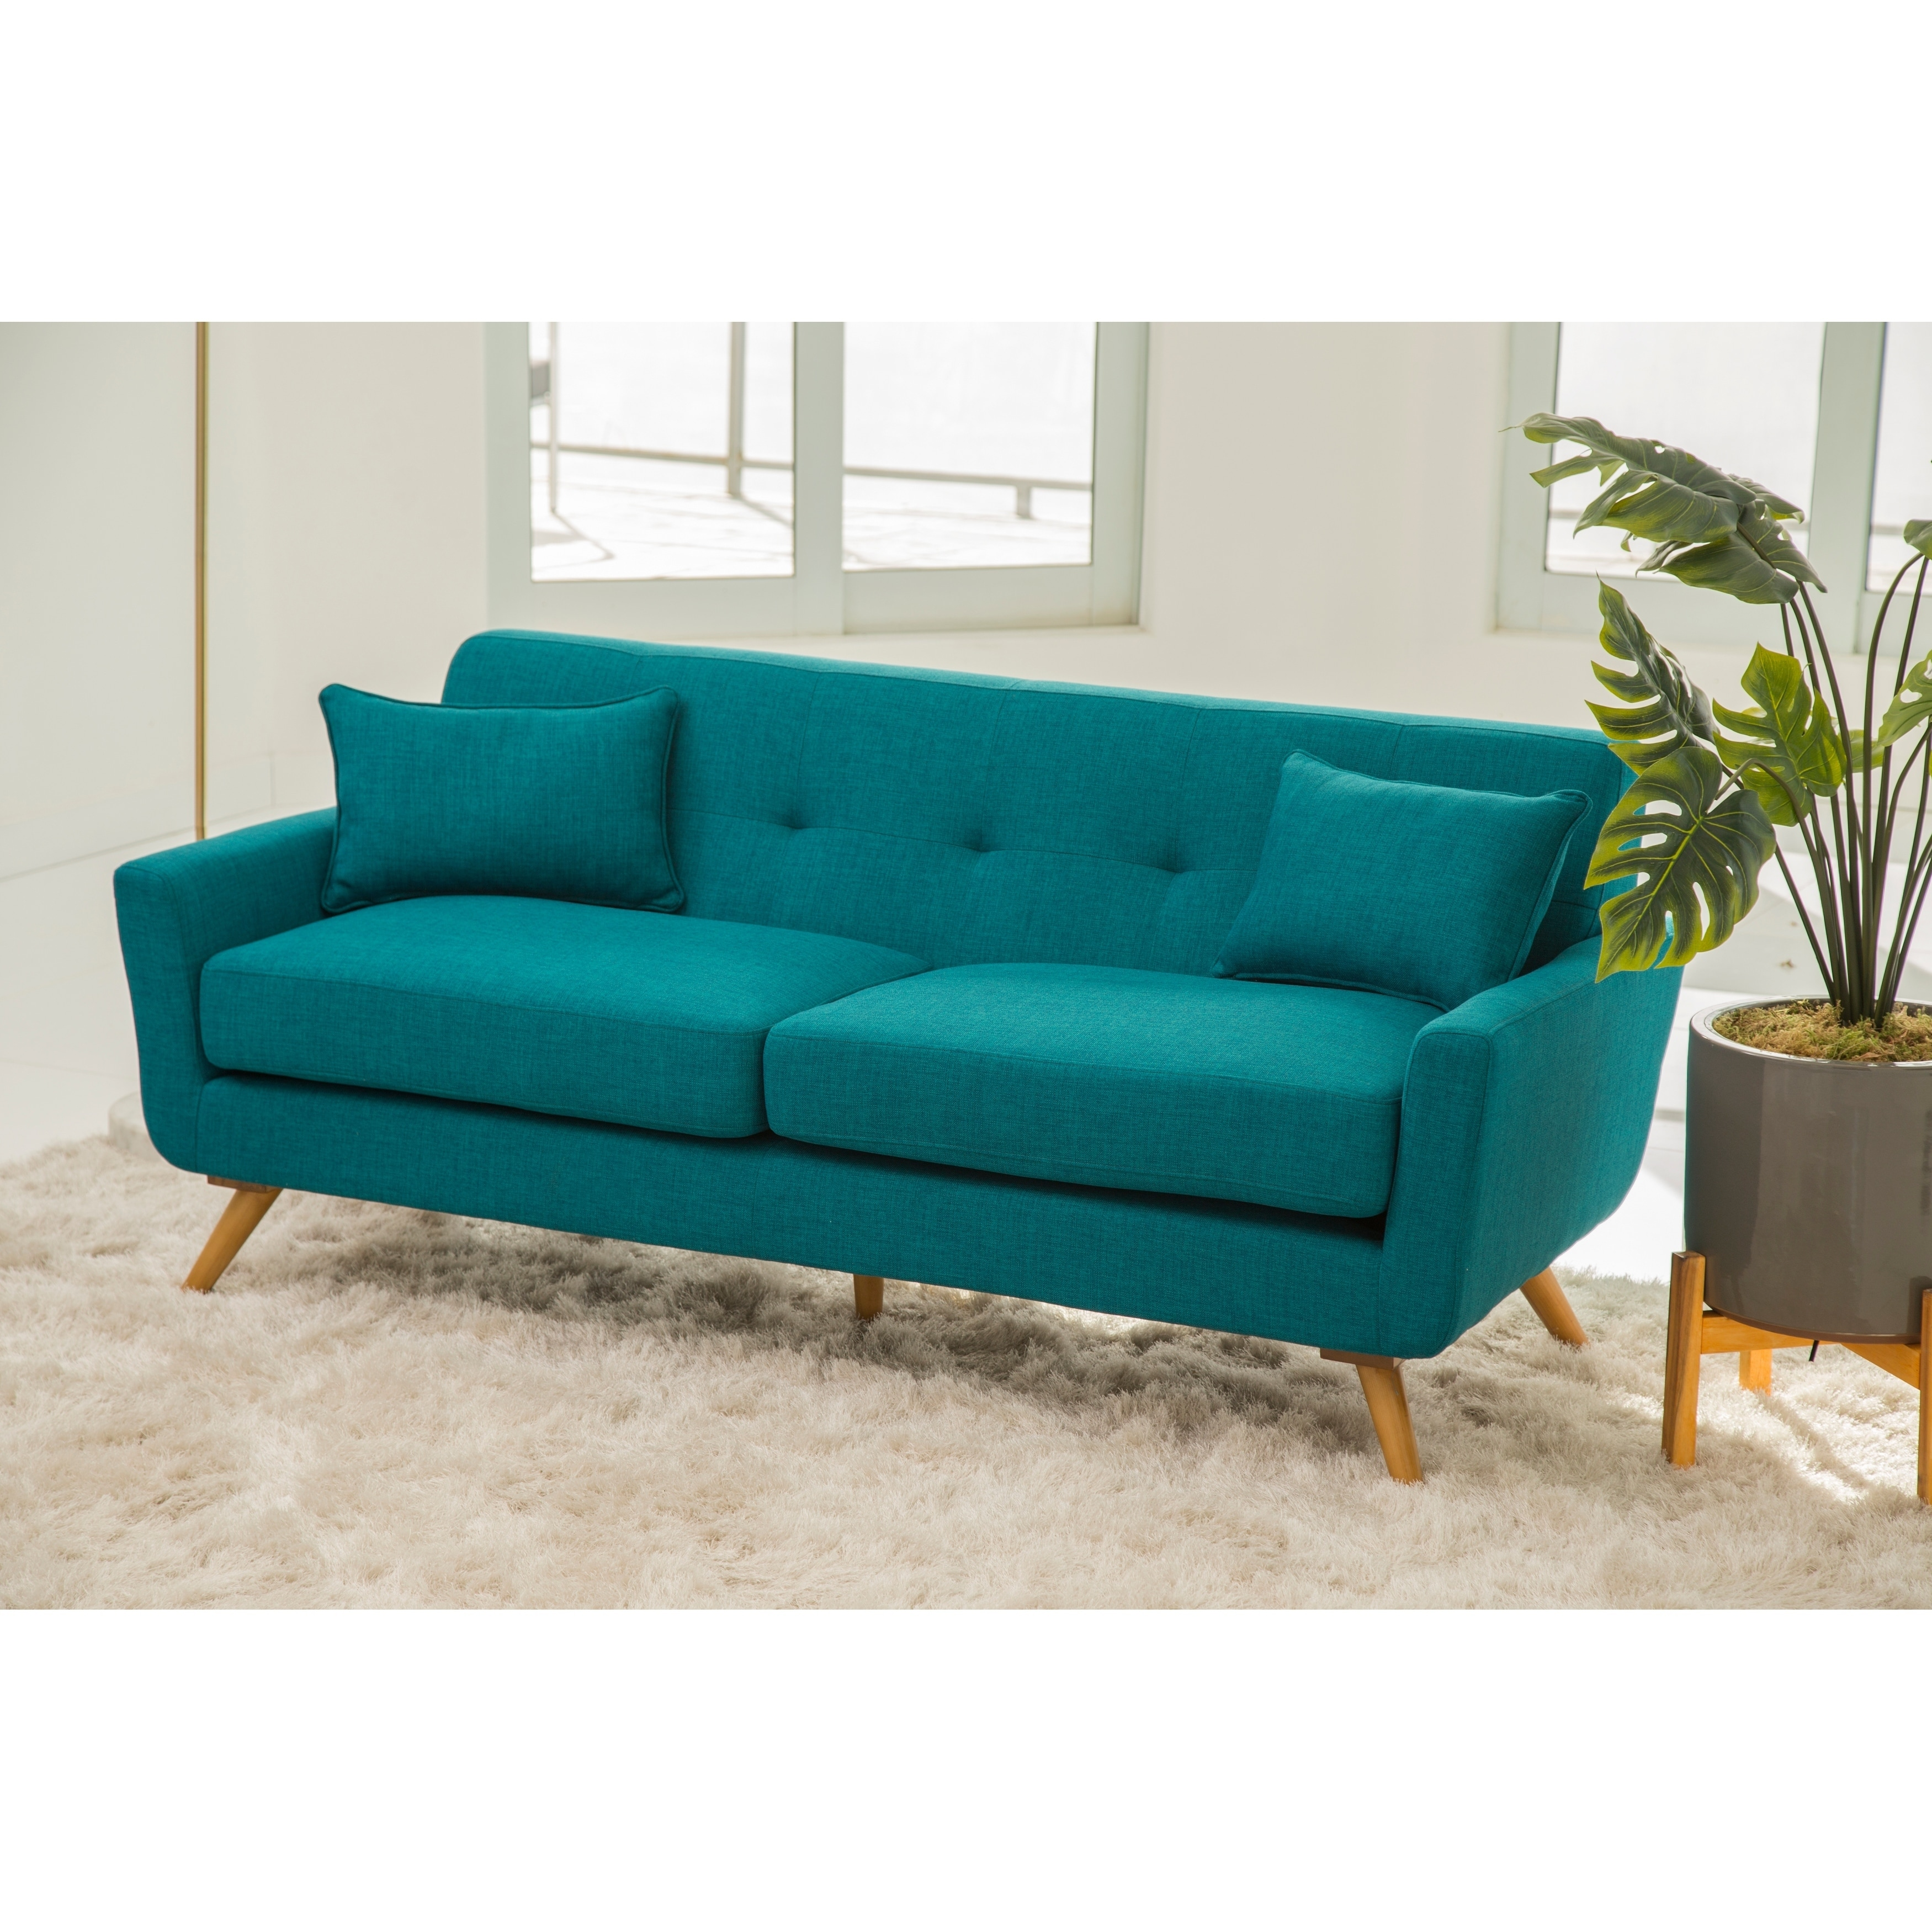 Shop Abbyson Bradley Teal Mid Century Fabric Sofa - On Sale - Free ...